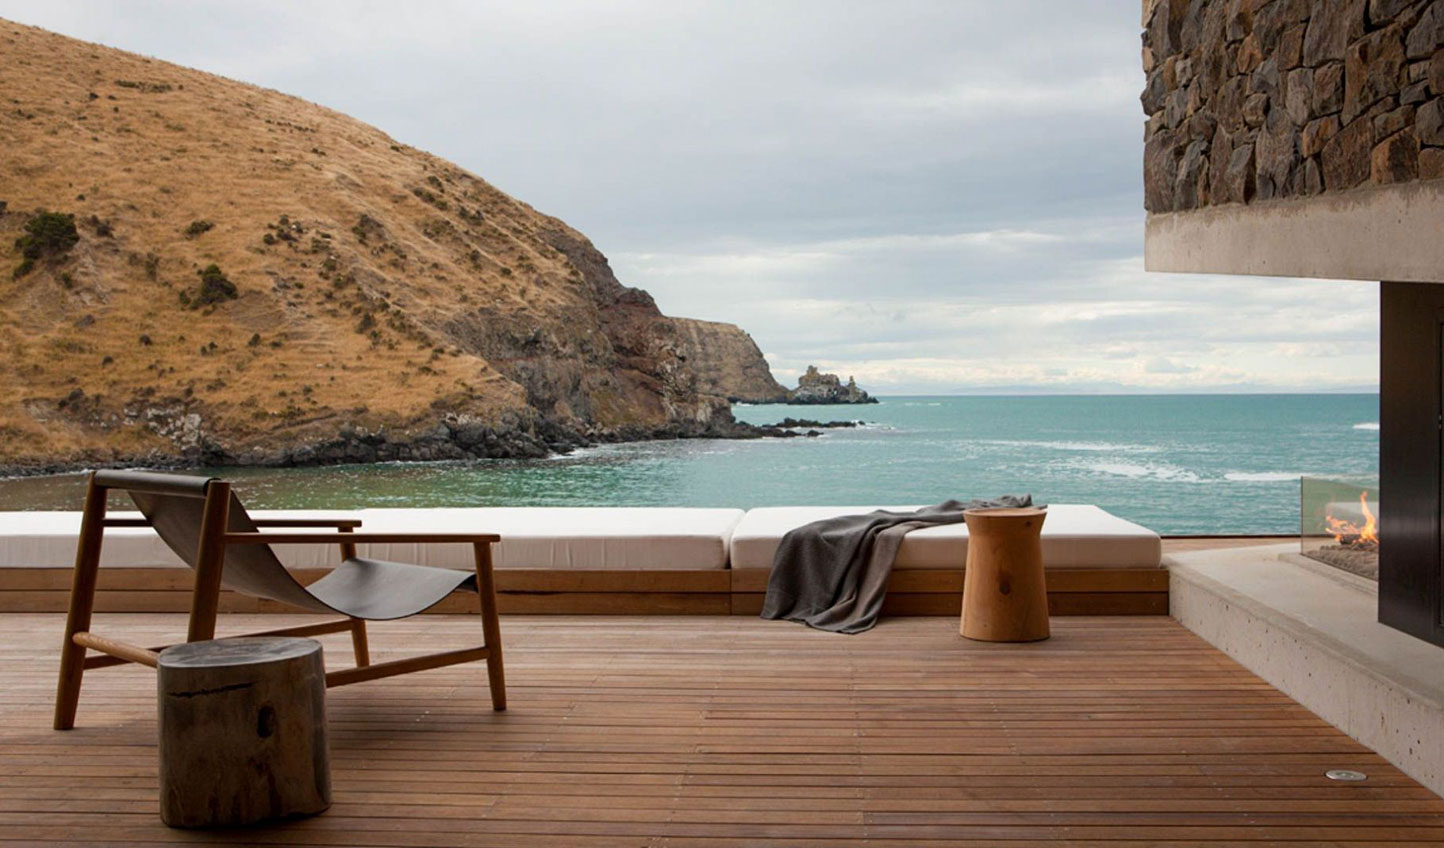 Image - Seascape, Annandale - find yourself experiencing true serenity